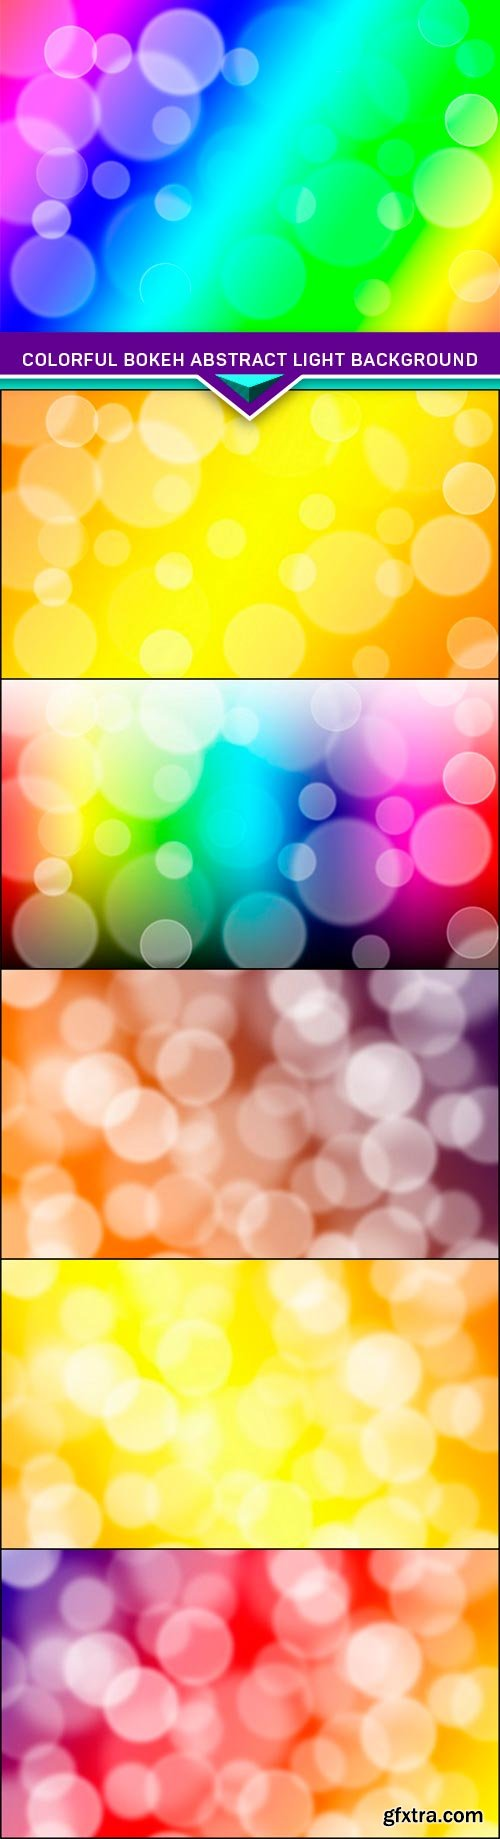 Colorful bokeh abstract light background 6x JPEG